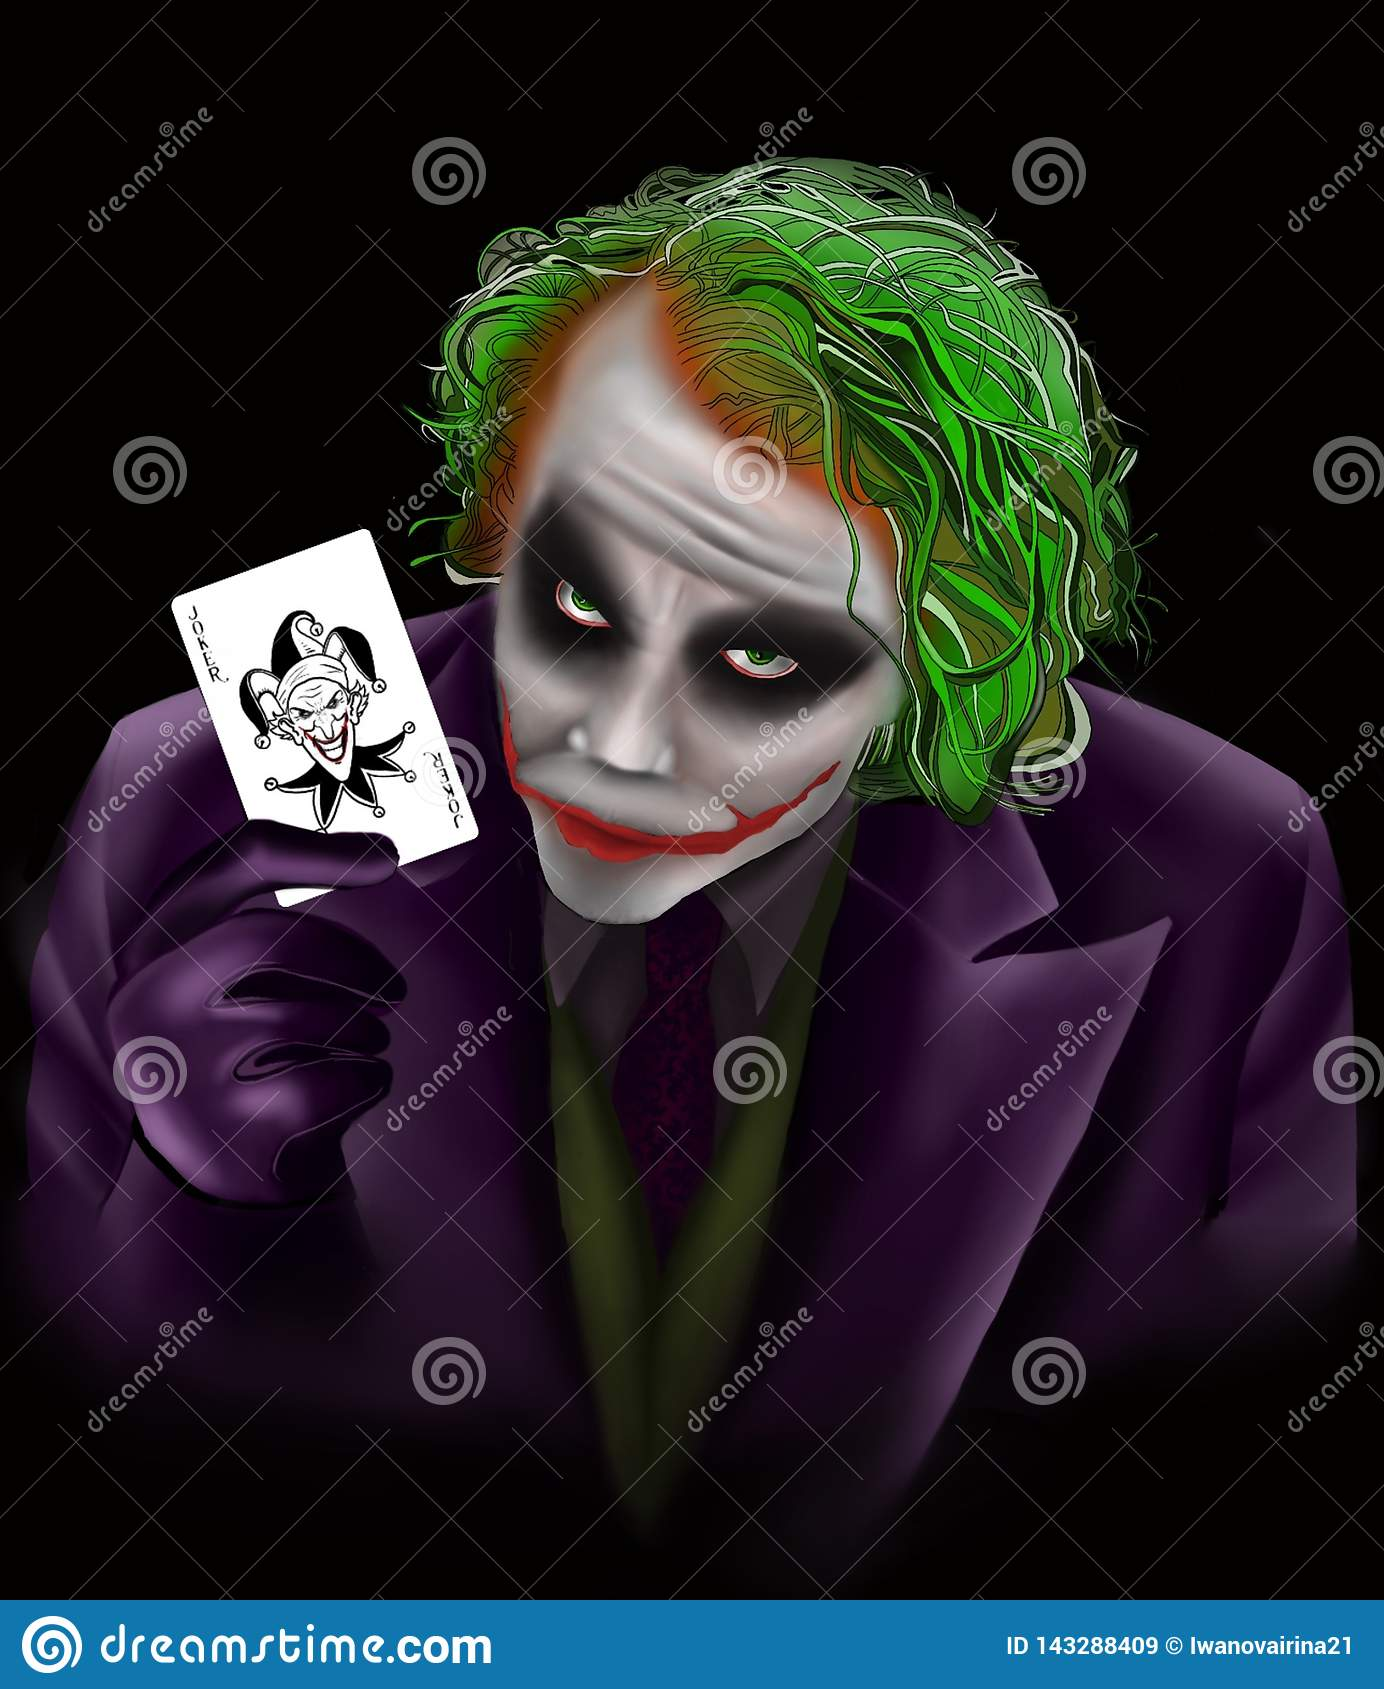 Cartoon Joker from DS